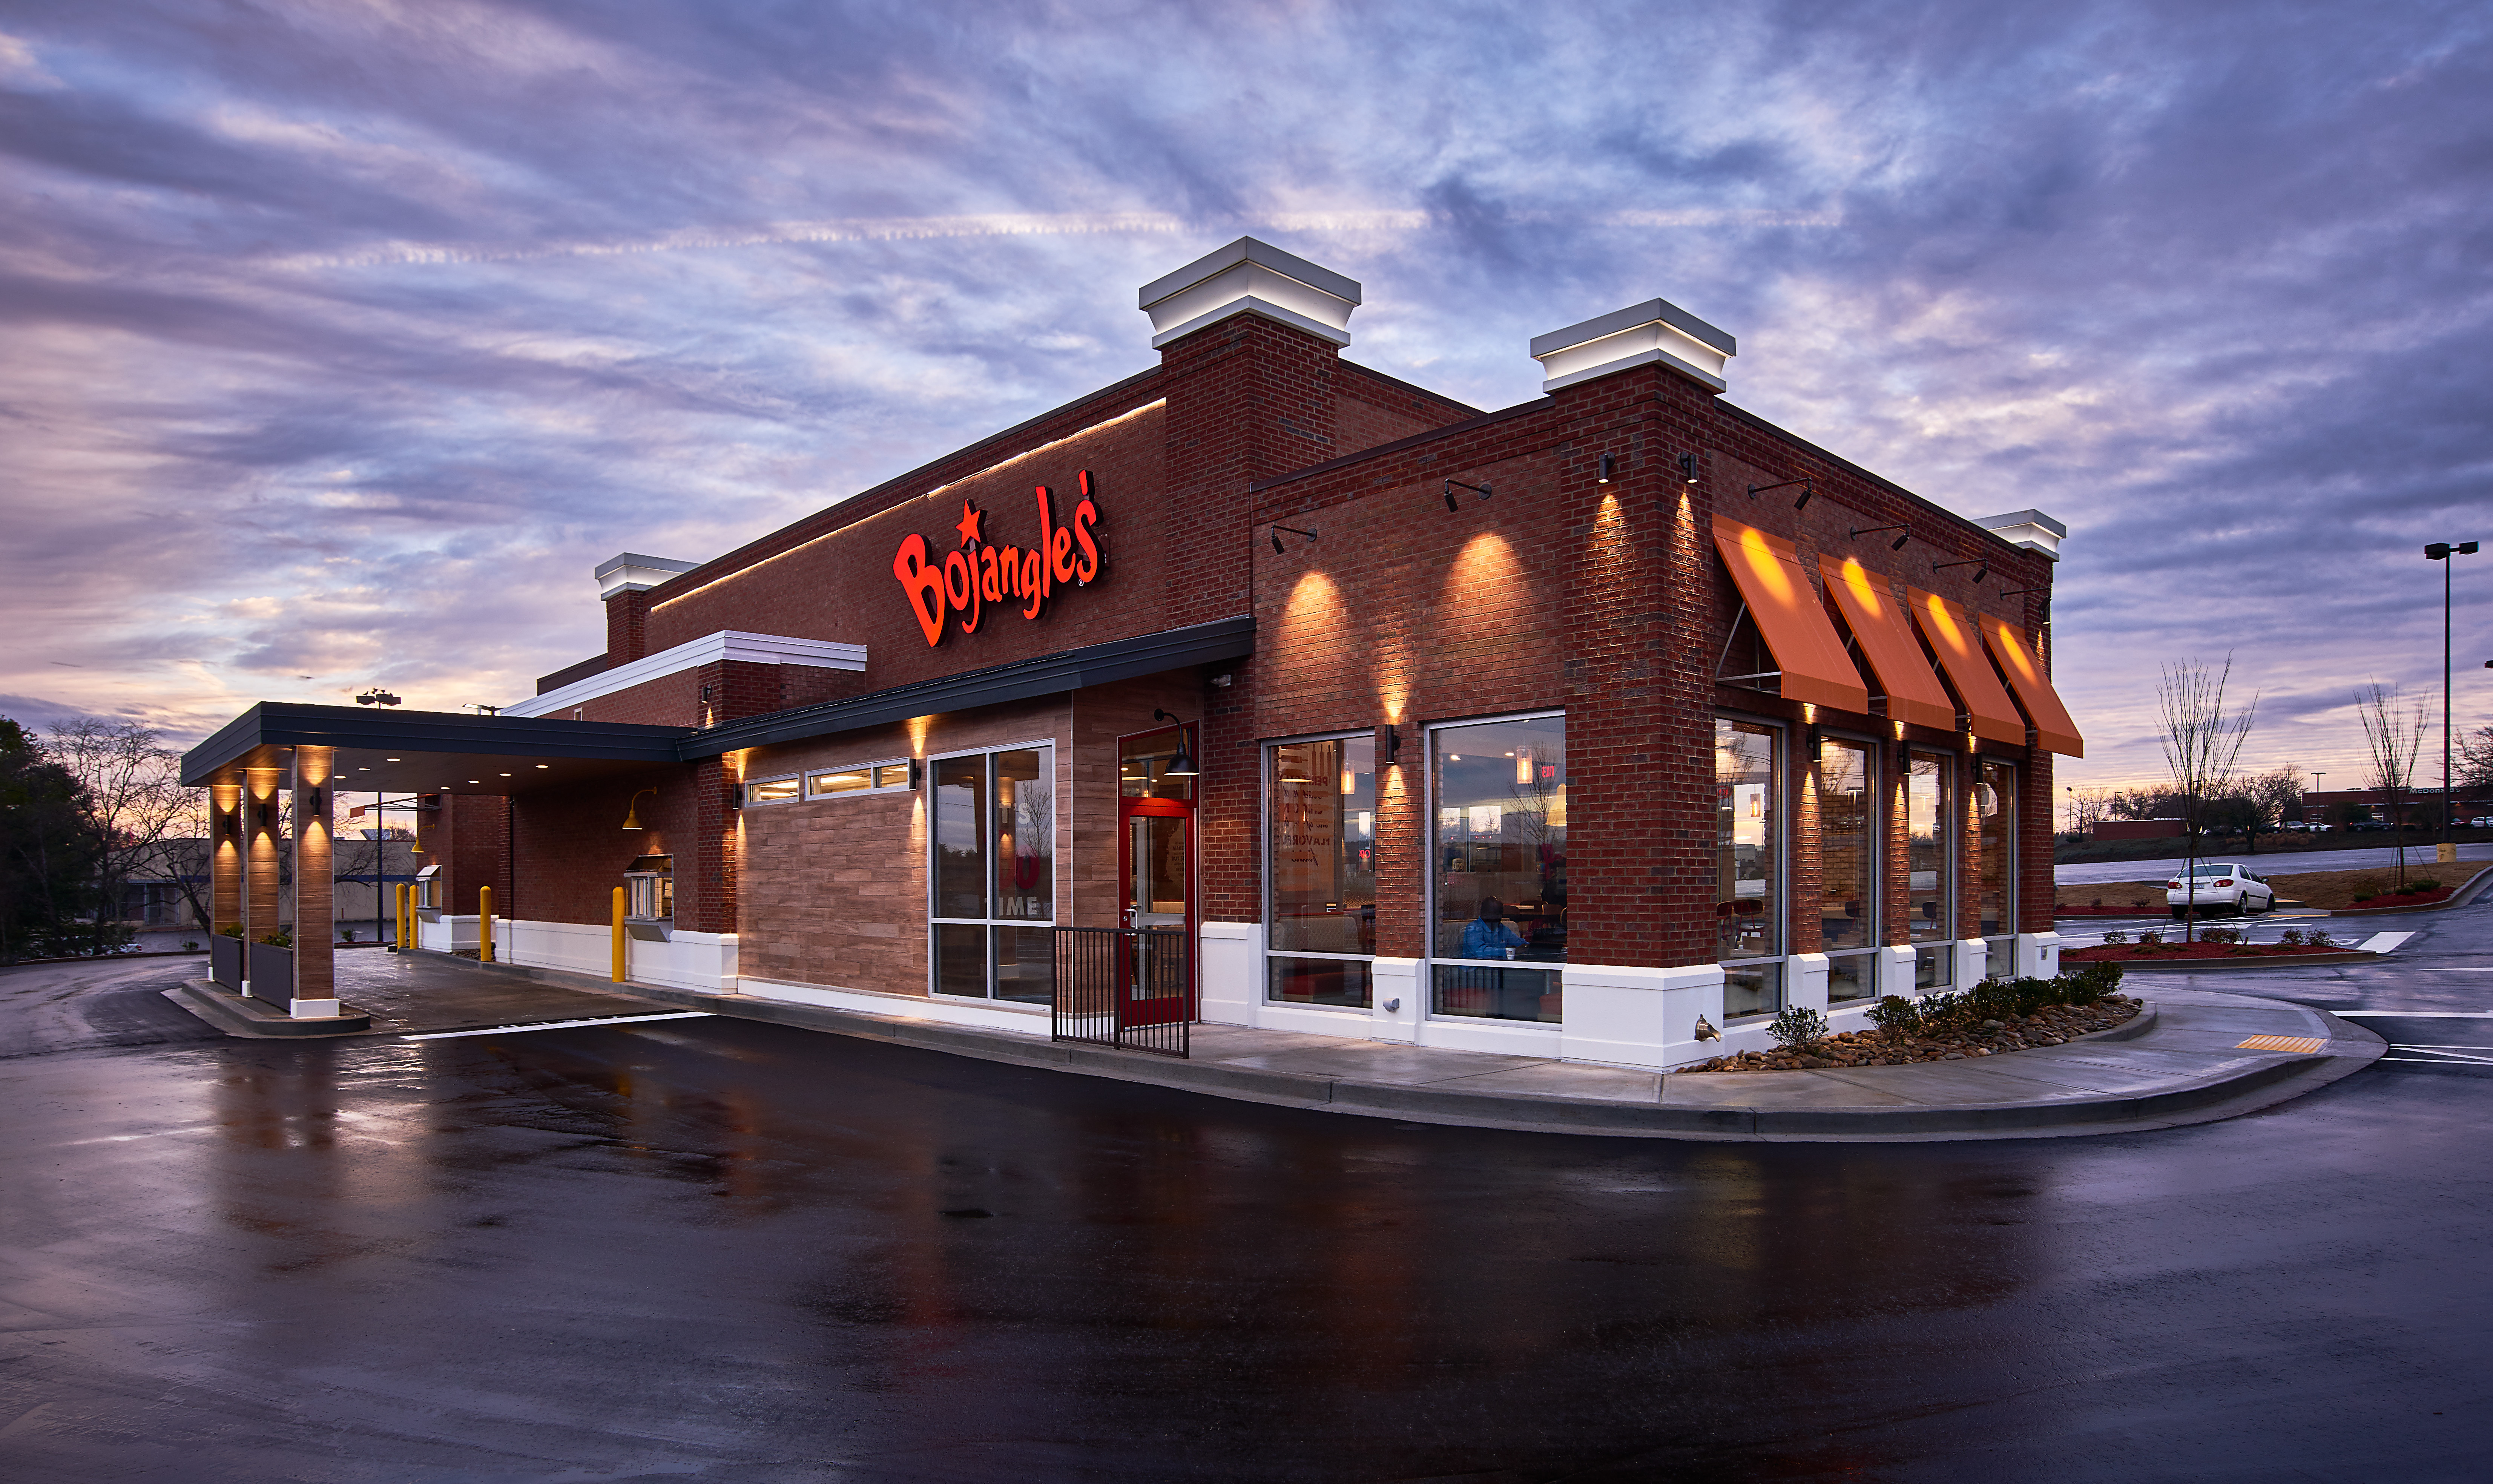 Bojangles' has invested in the development of a dynamic new restaurant design, which will bring a modern ambiance to complement its freshly-made, high-quality food and restaurant hospitality. (Photo: Bojangles')